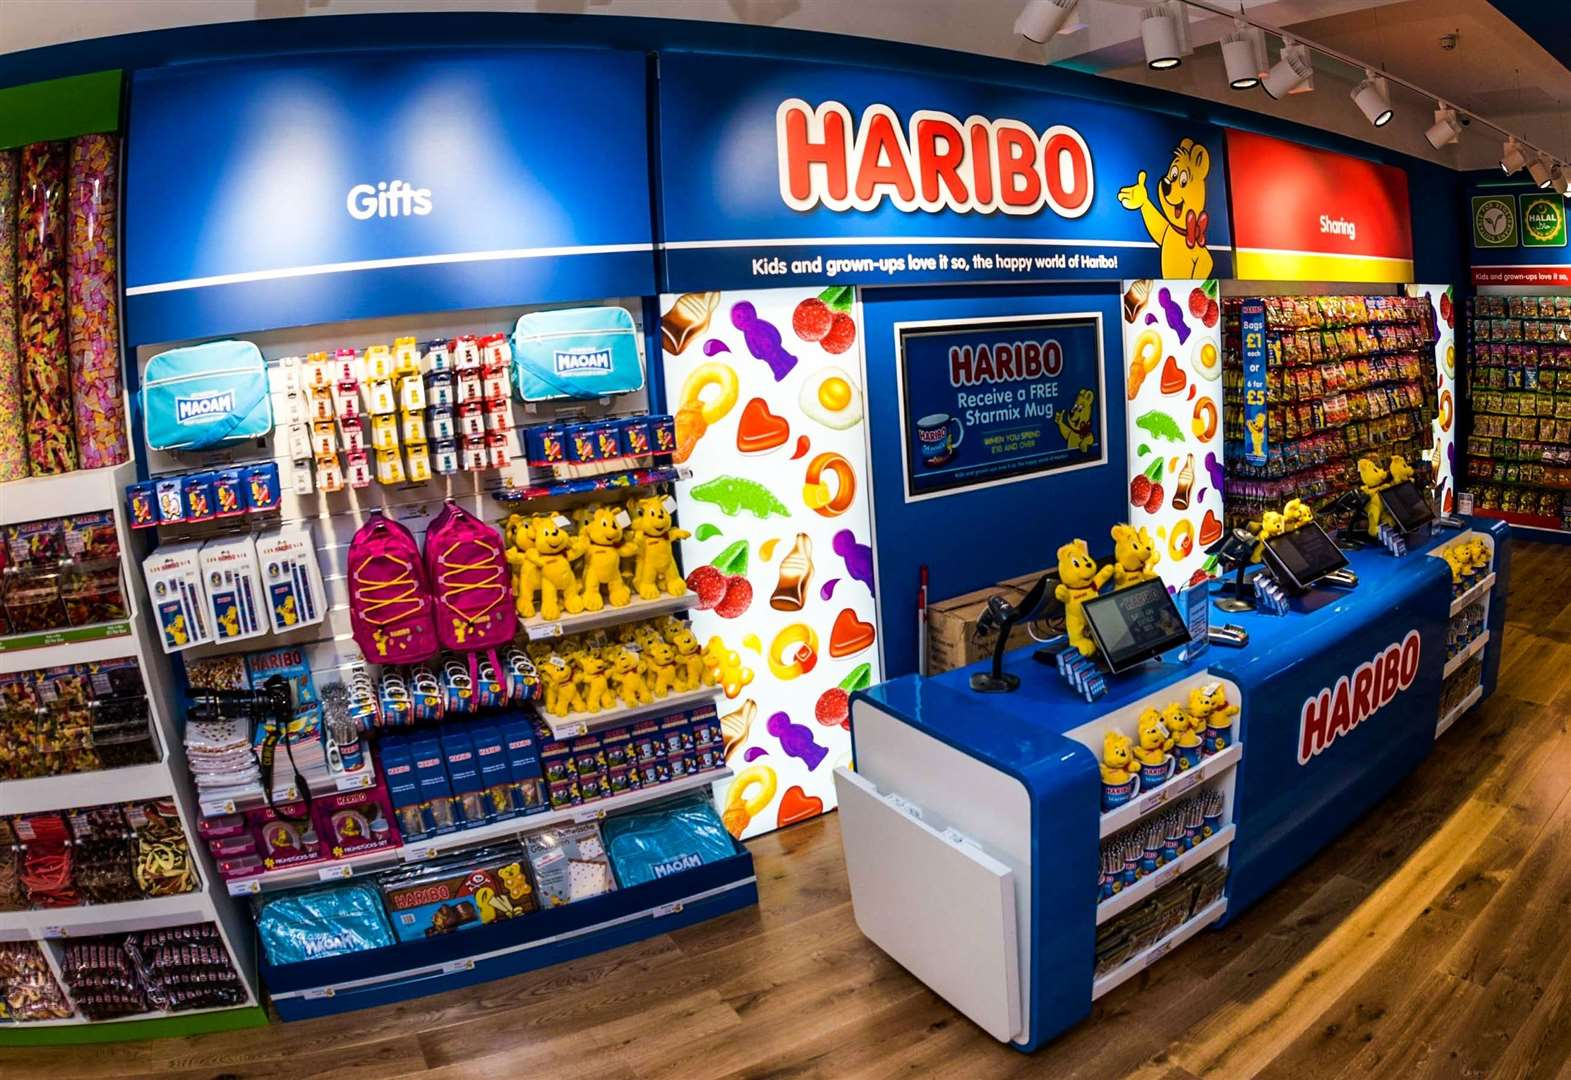 Good new kids! Haribo sweet shop to open in Kent